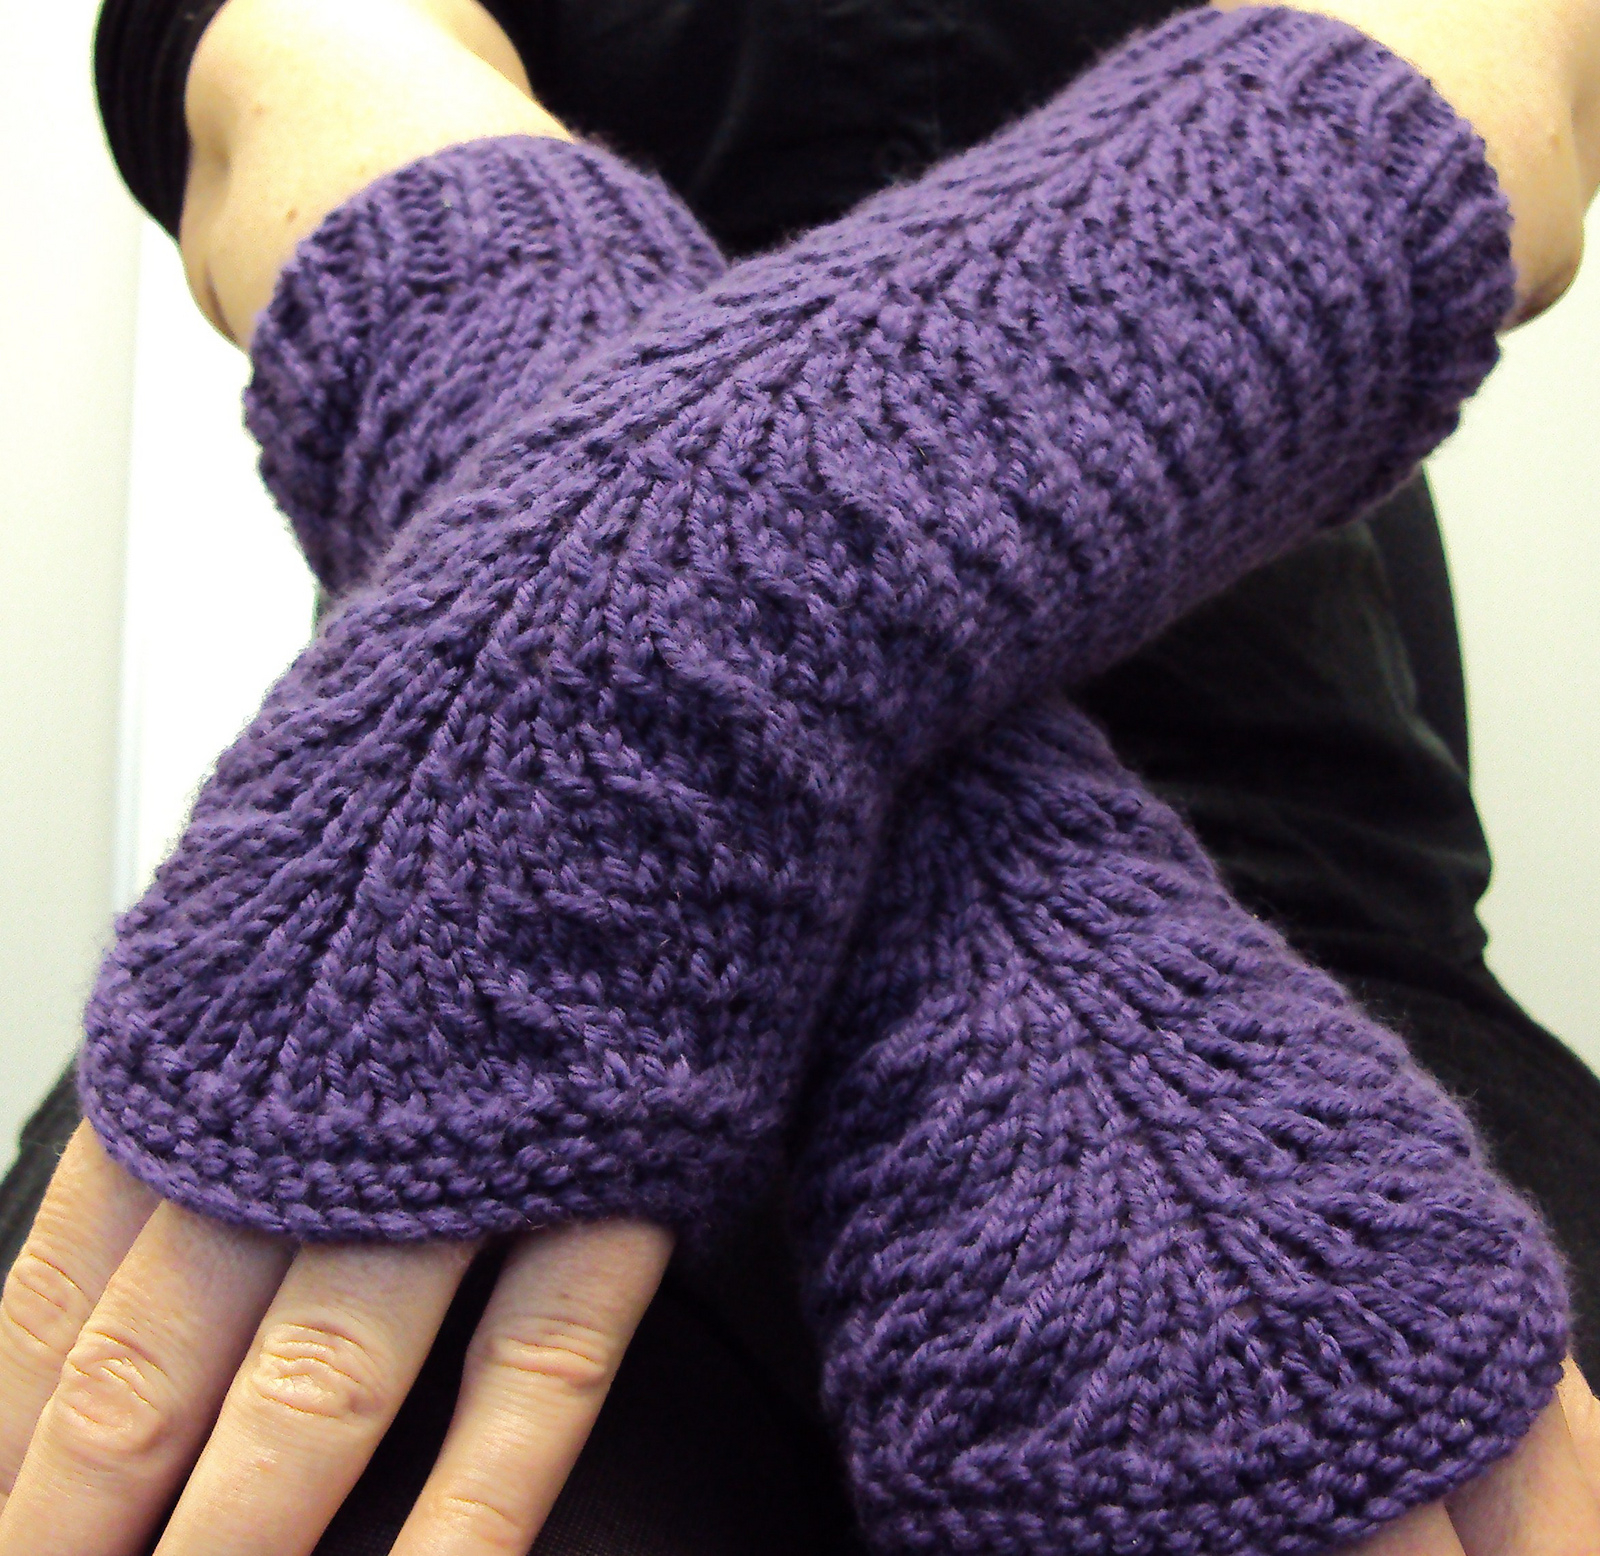 Mens Fingerless Gloves Knit Pattern Easy Mitts Knit Flat Knitting Patterns In The Loop Knitting